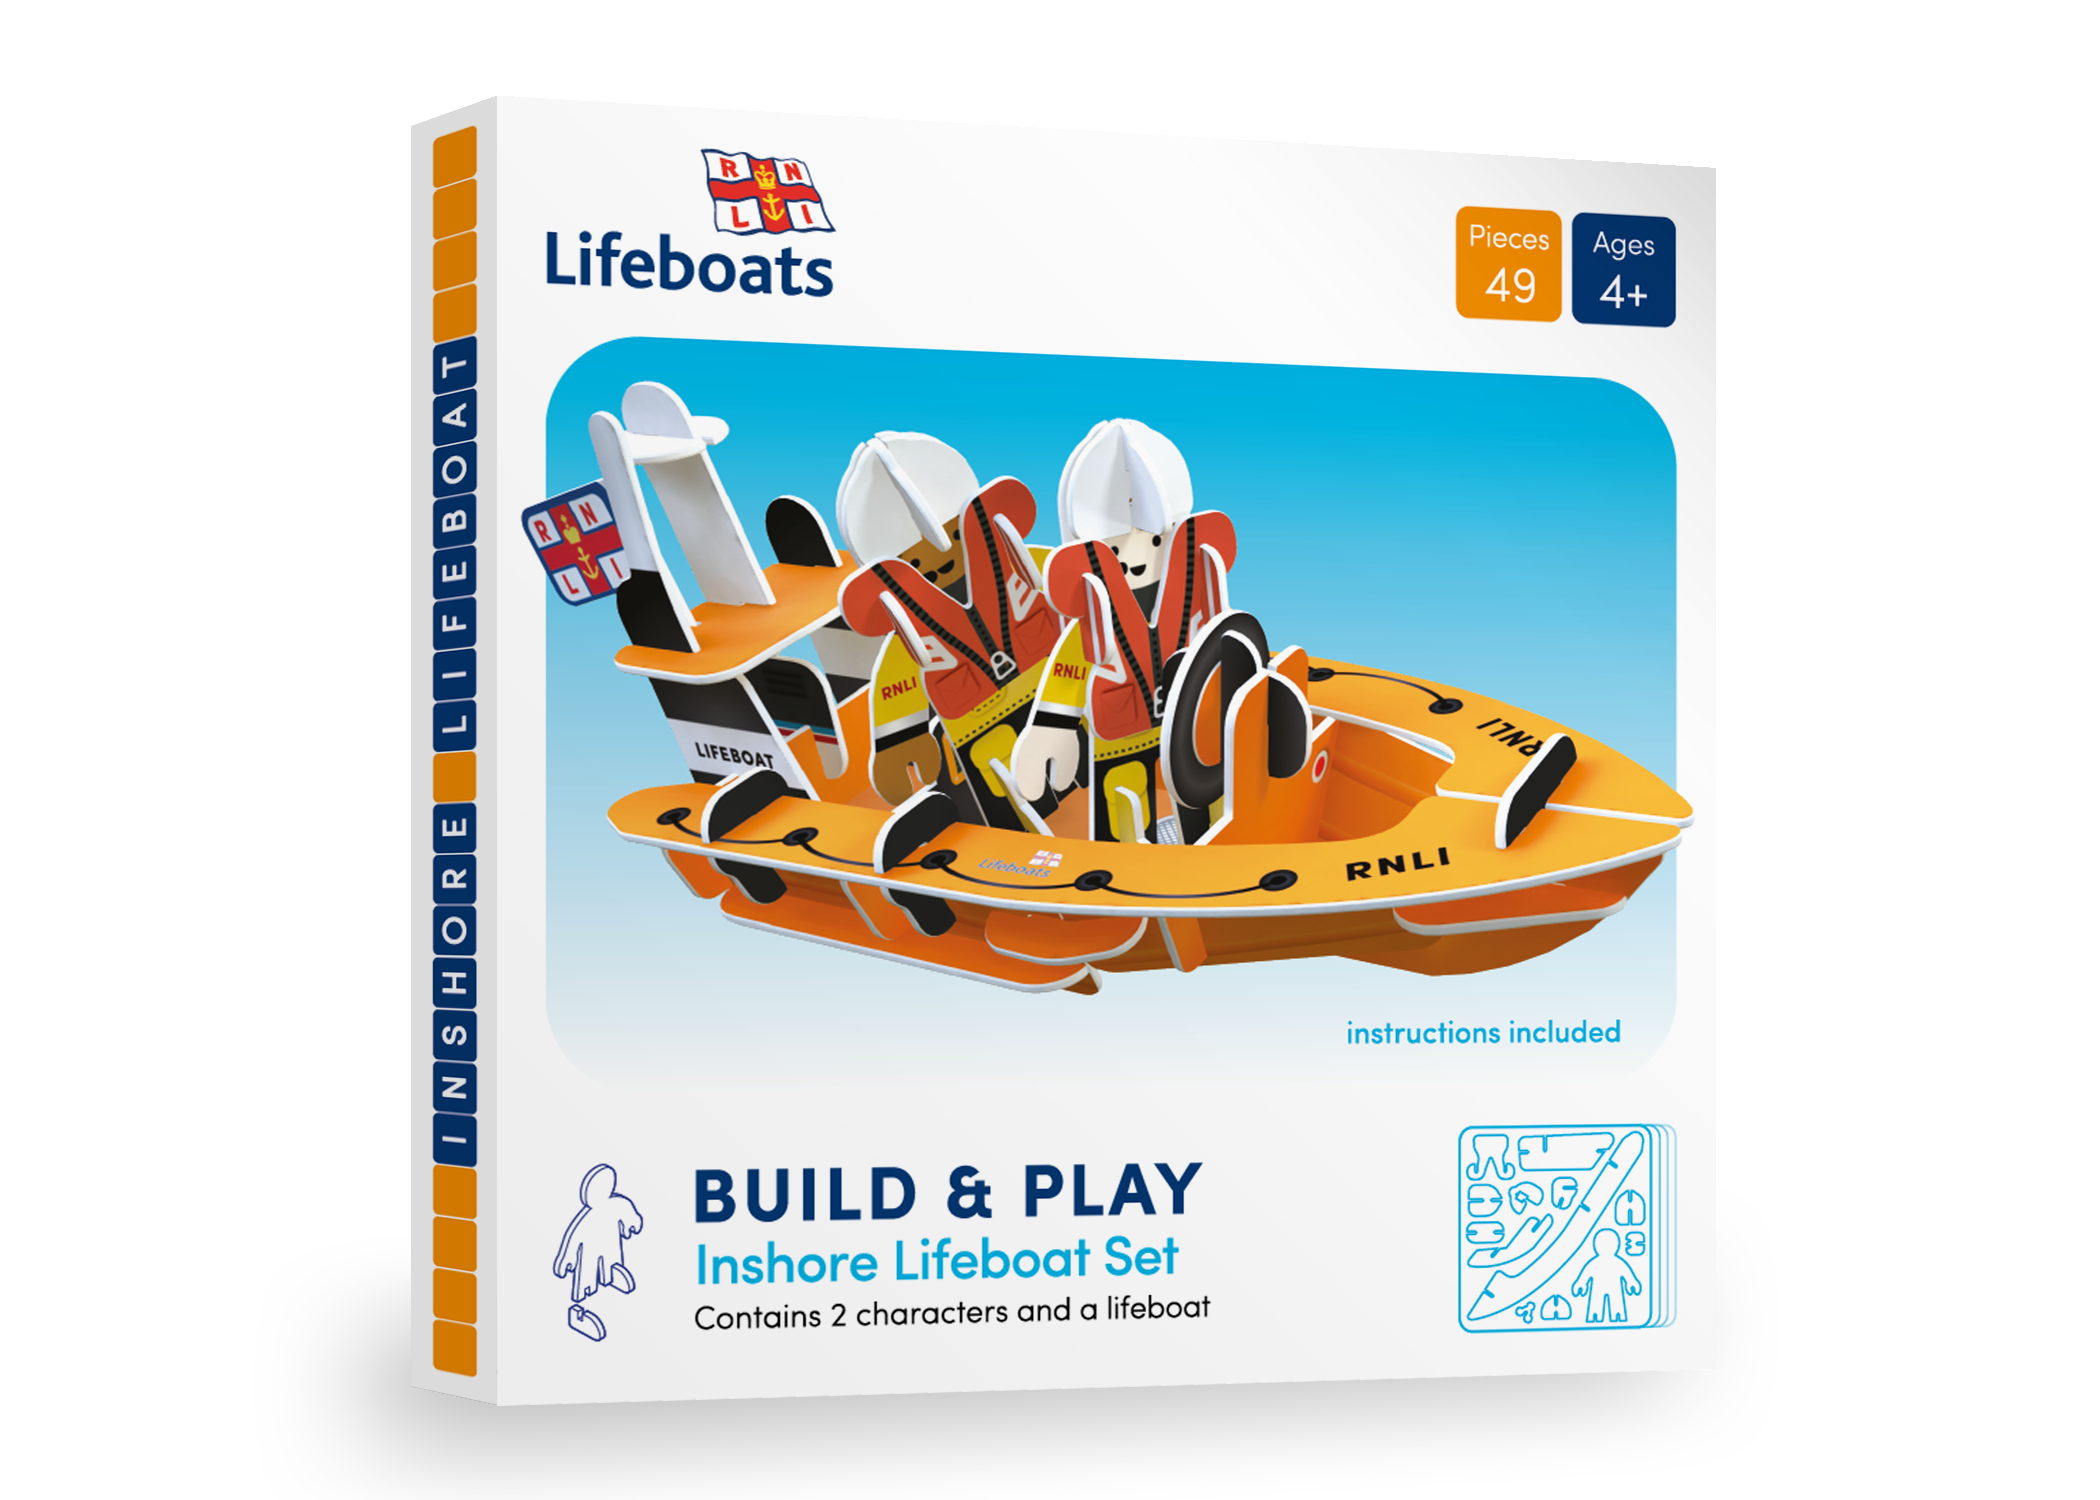 RNLI_BClass_lifeboat_people_with_shadow.png